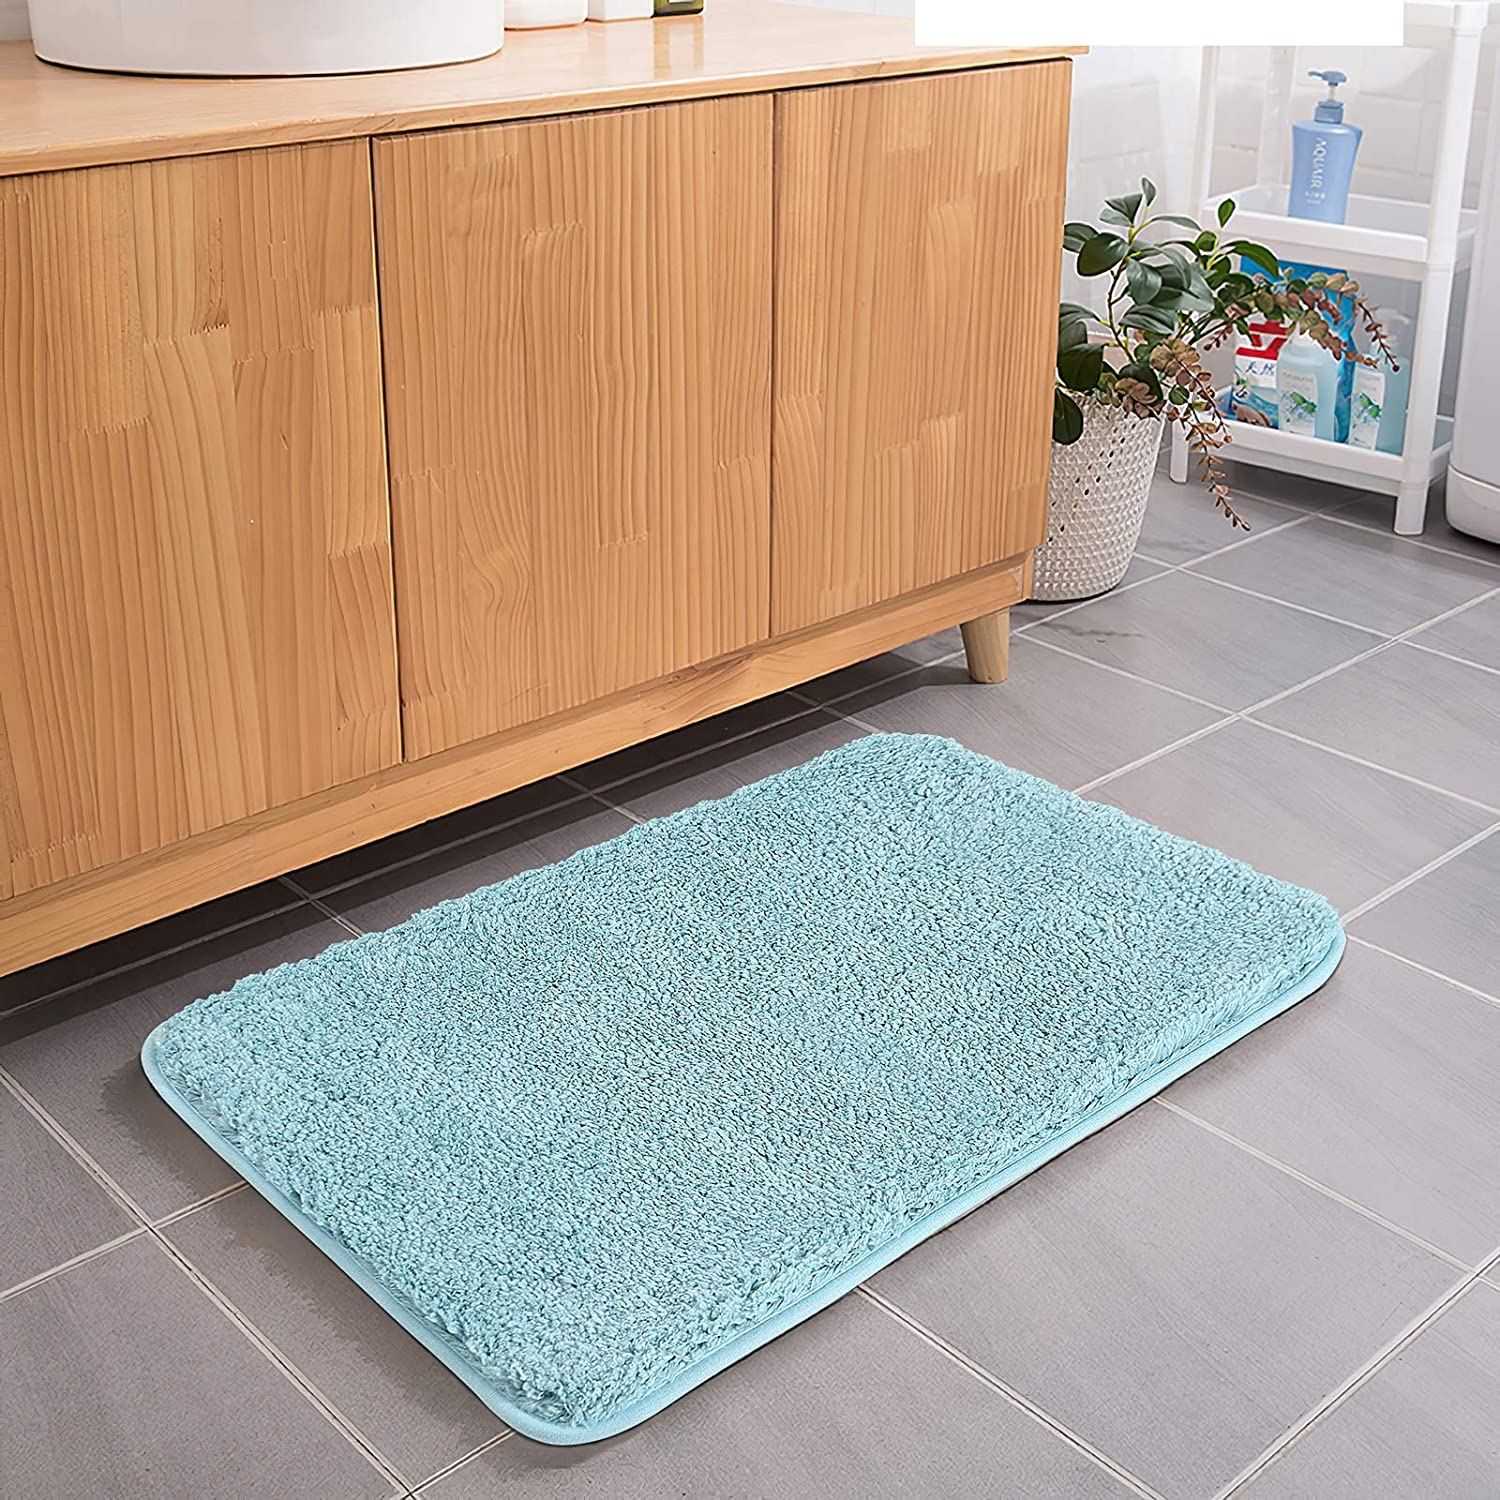 Bath Max 41% OFF Rug COSY HOMEER 40x24 Inch Thickness W Max 61% OFF Shaggy Soft Non-Slip